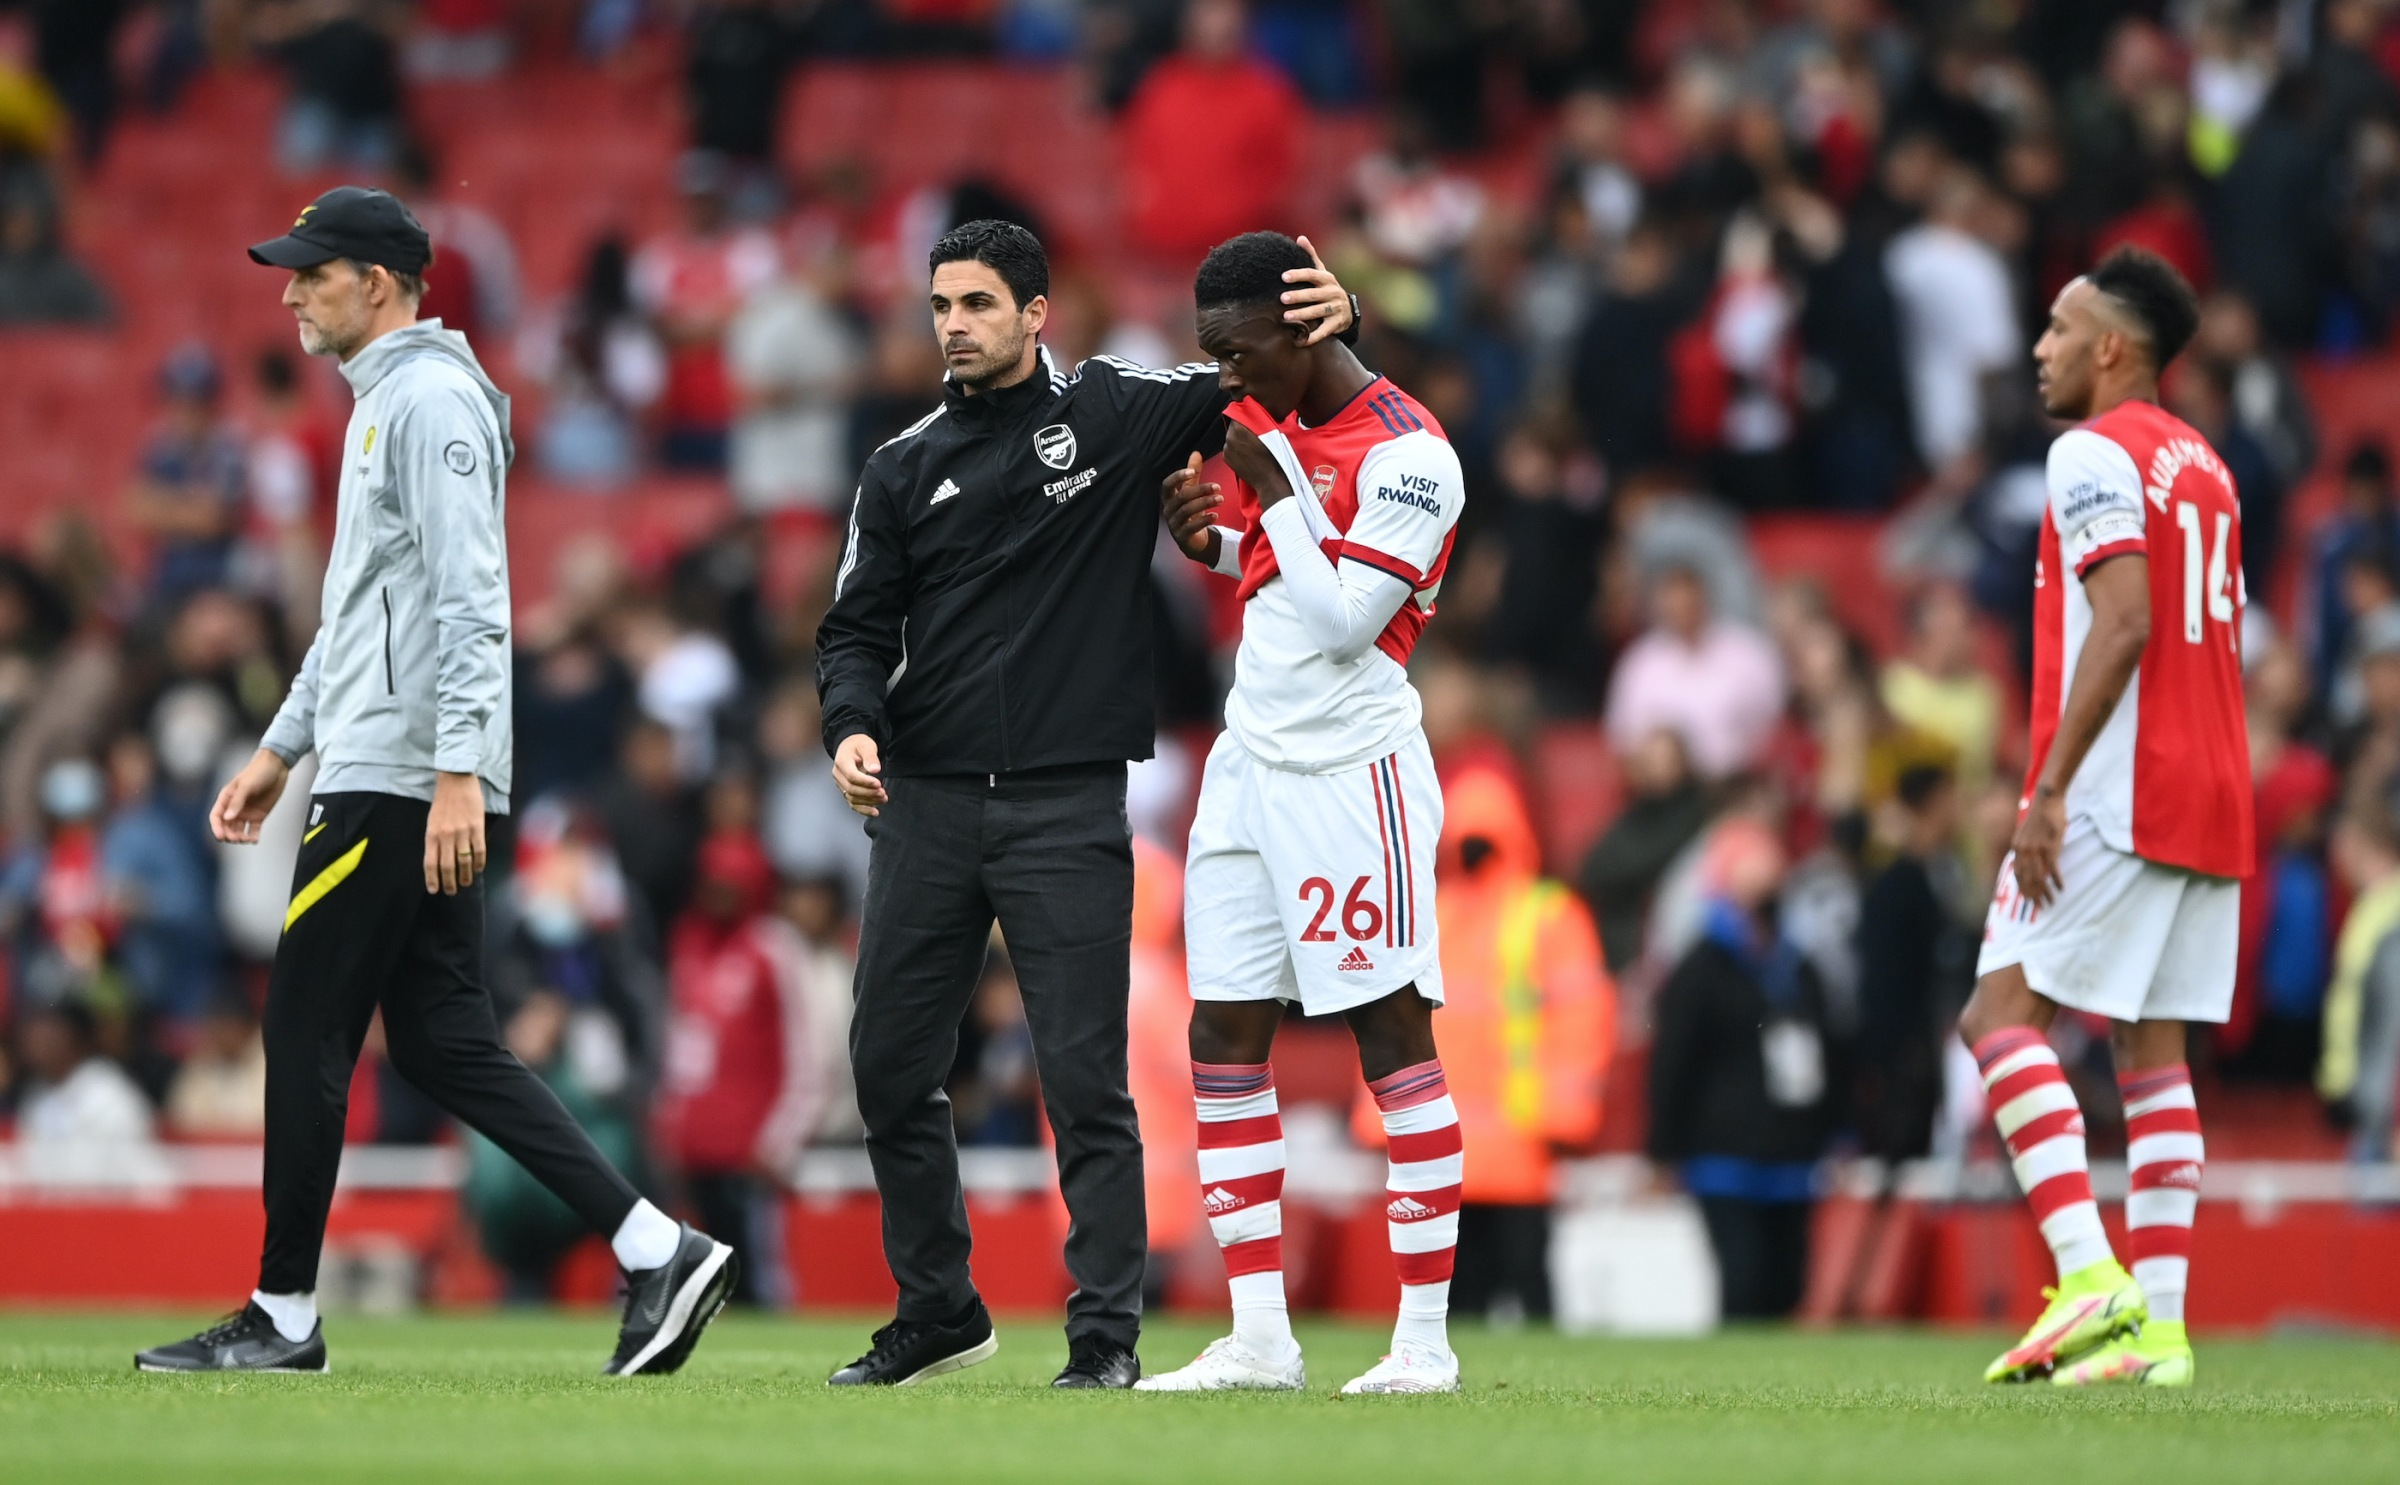 Folarin Balogun of Arsenal looks dejected as he is consoled by Mikel Arteta, Manager of Arsenal following defeat in the Premier League match between Arsenal and Chelsea at Emirates Stadium on August 22, 2021 in London, England.